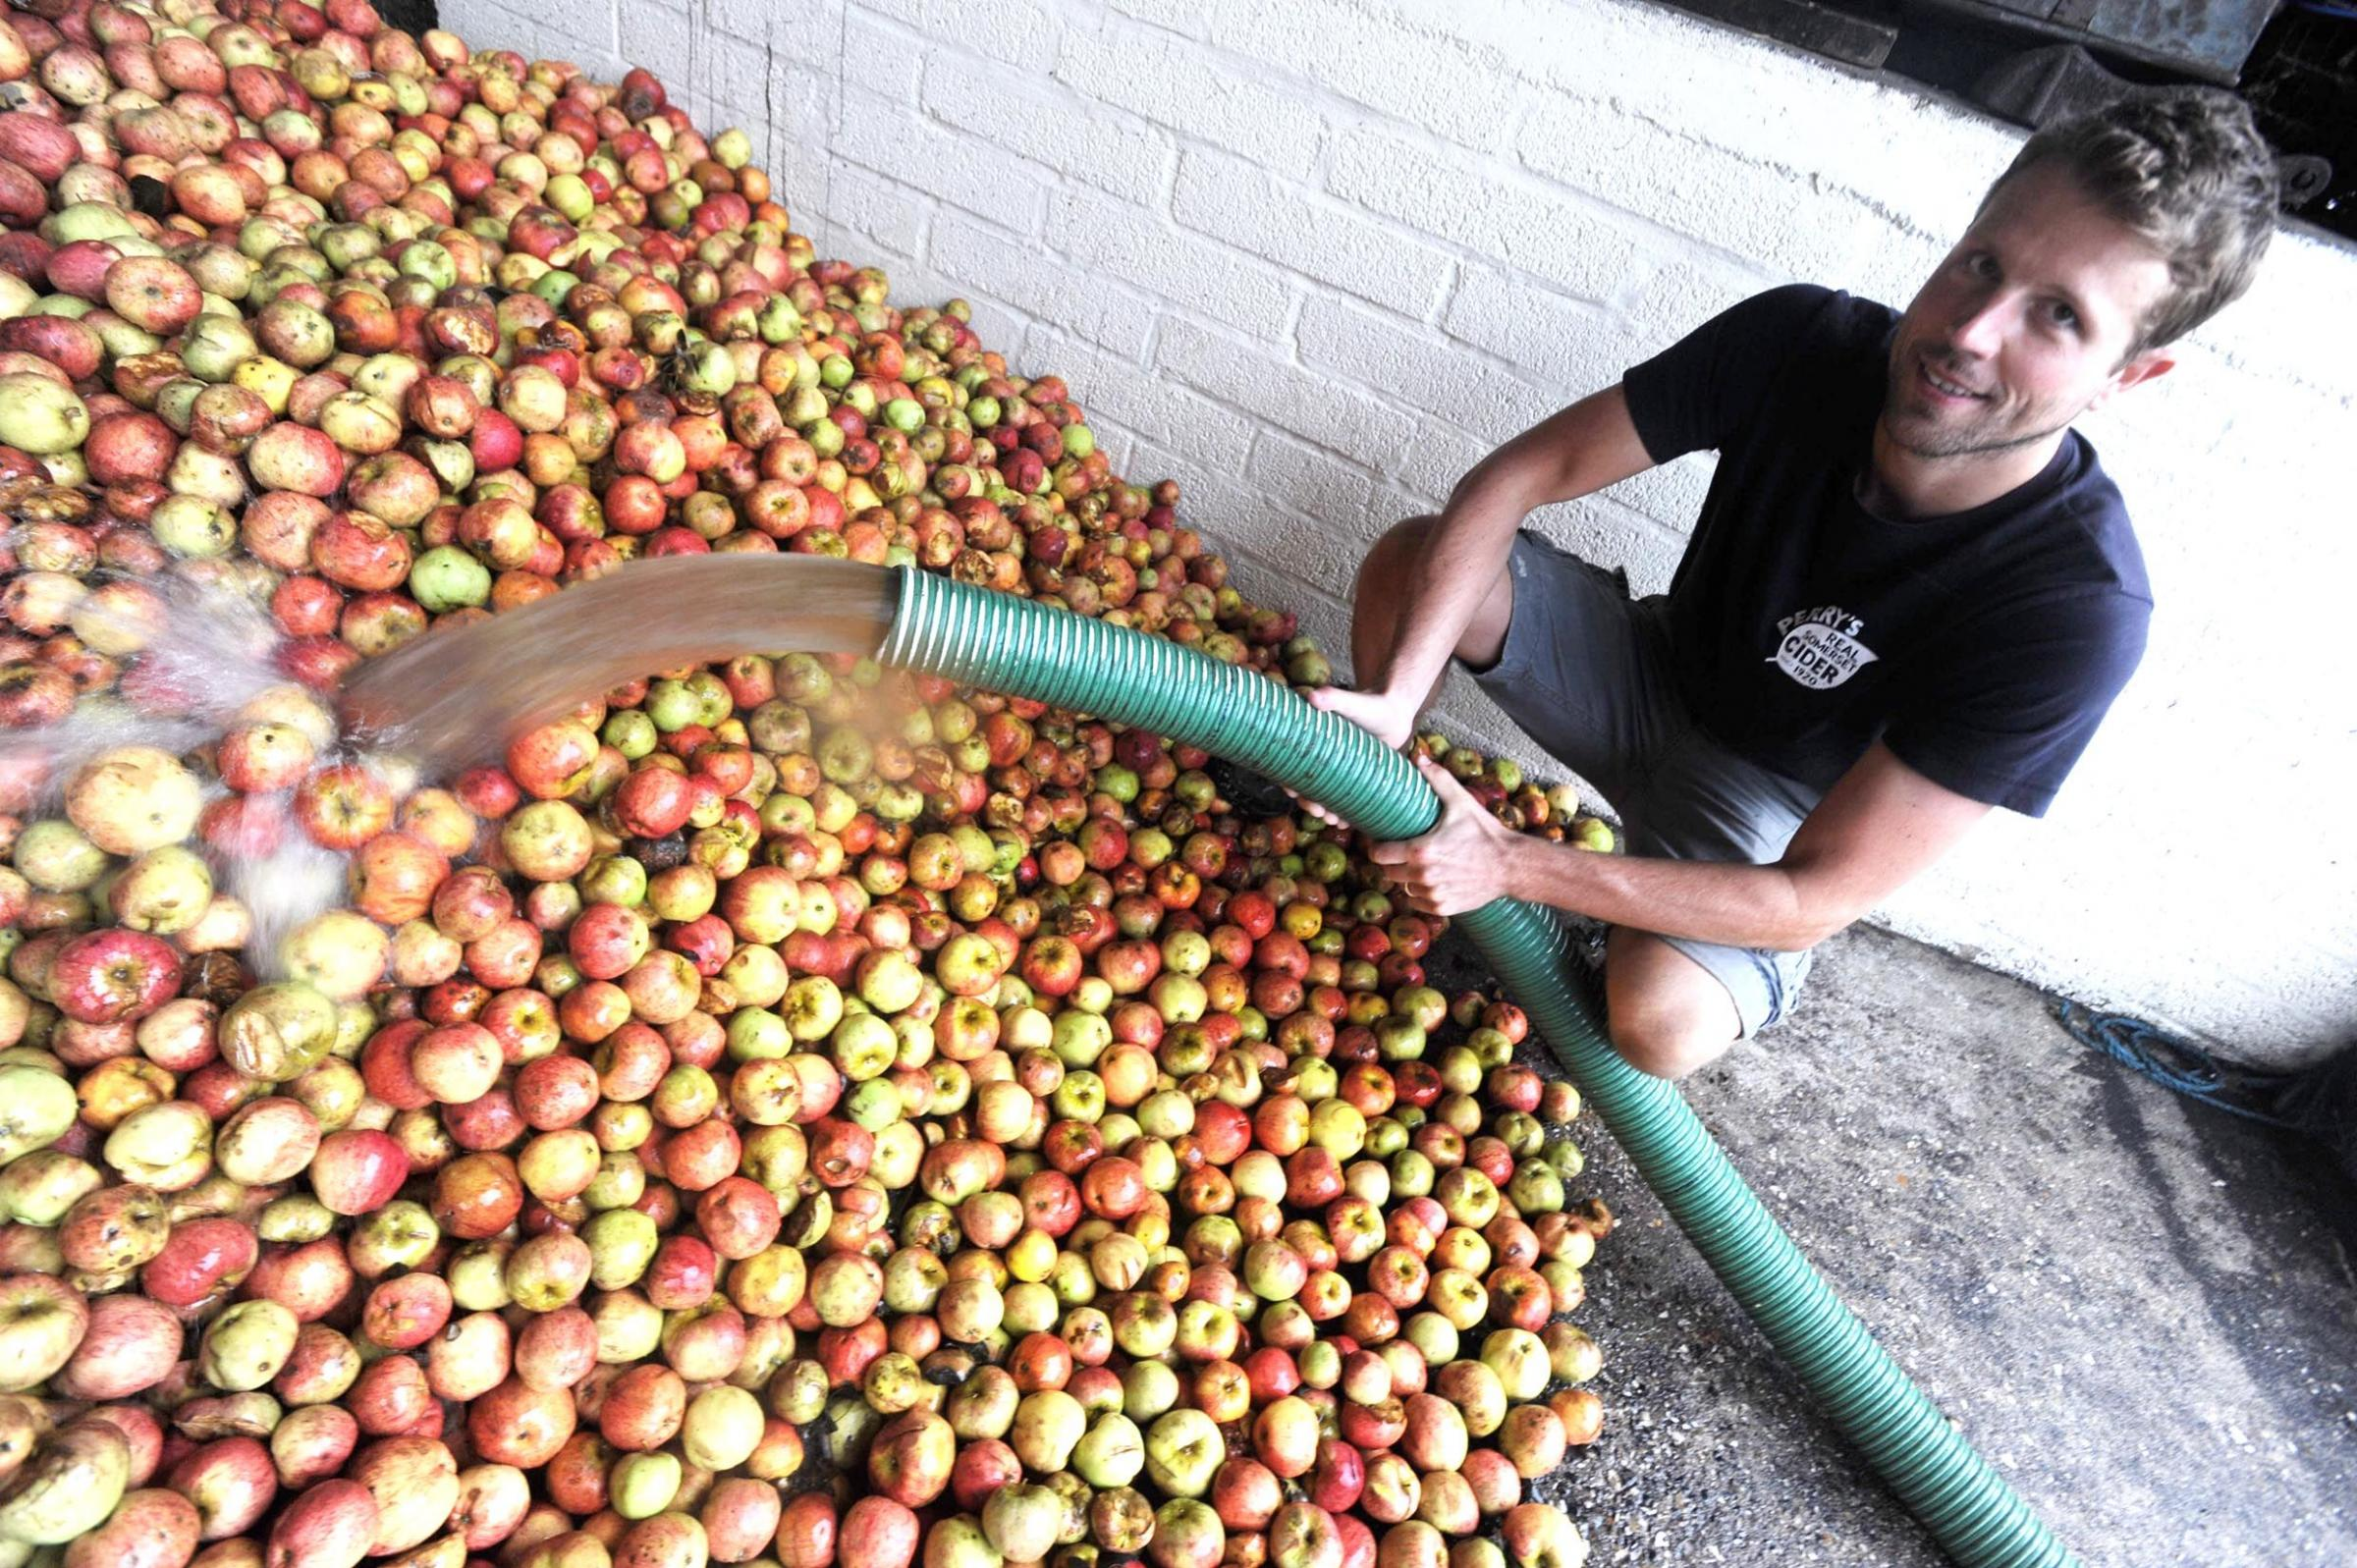 FEATURE: Perrys Cider give The Chard & Ilminster News a look around their orchards